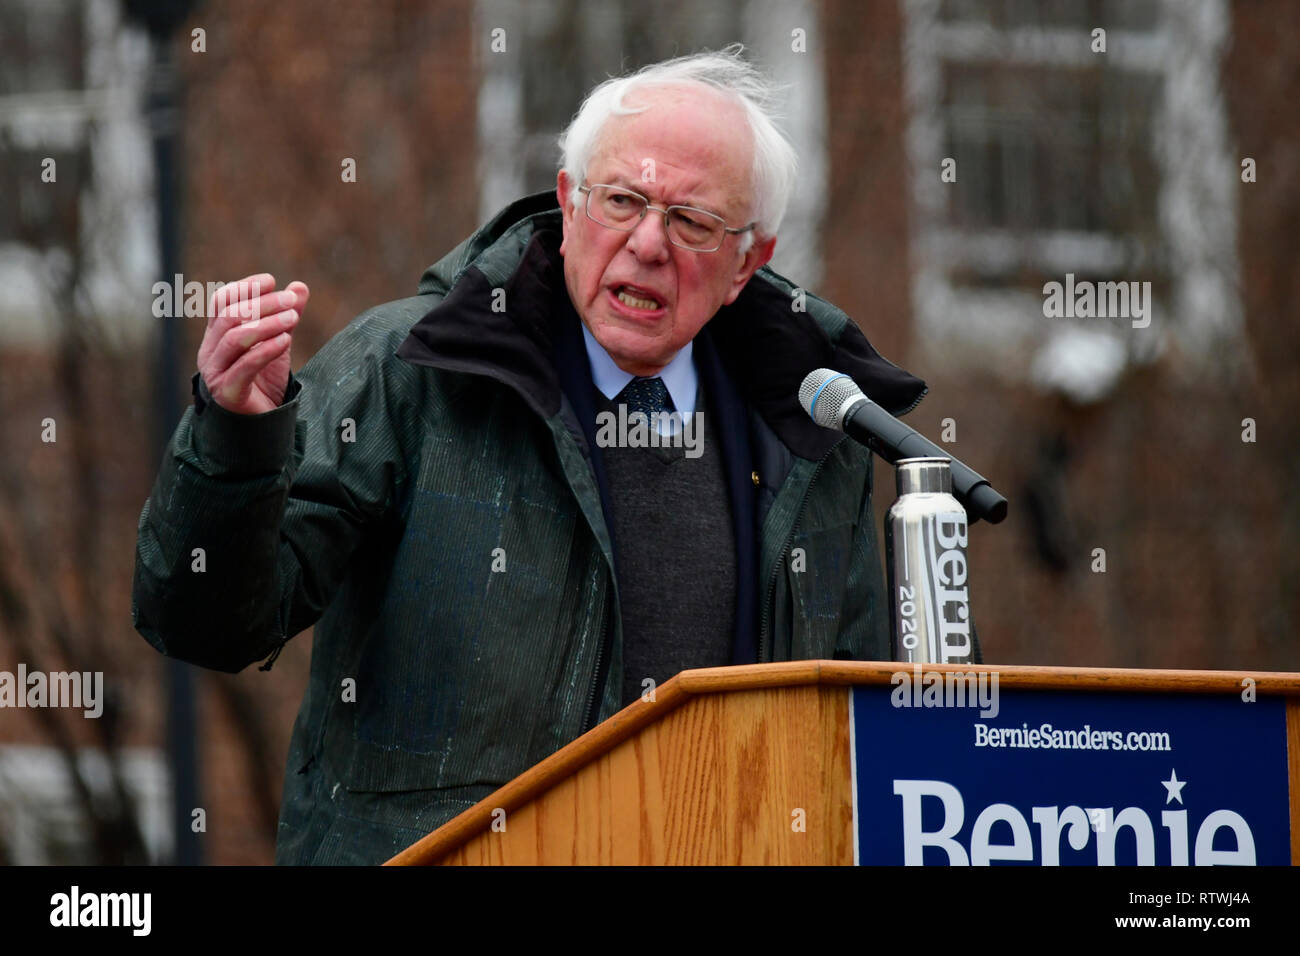 New York, NY, USA. 2nd March, 2019. Bernie Sanders (I-VT) kicks-off his campaign for the 2020 U.S. Presidential Elections on a Democratic ticket at a rally at Brooklyn College, in Brooklyn, NY on March 2, 2019. Credit: OOgImages/Alamy Live News - Stock Image